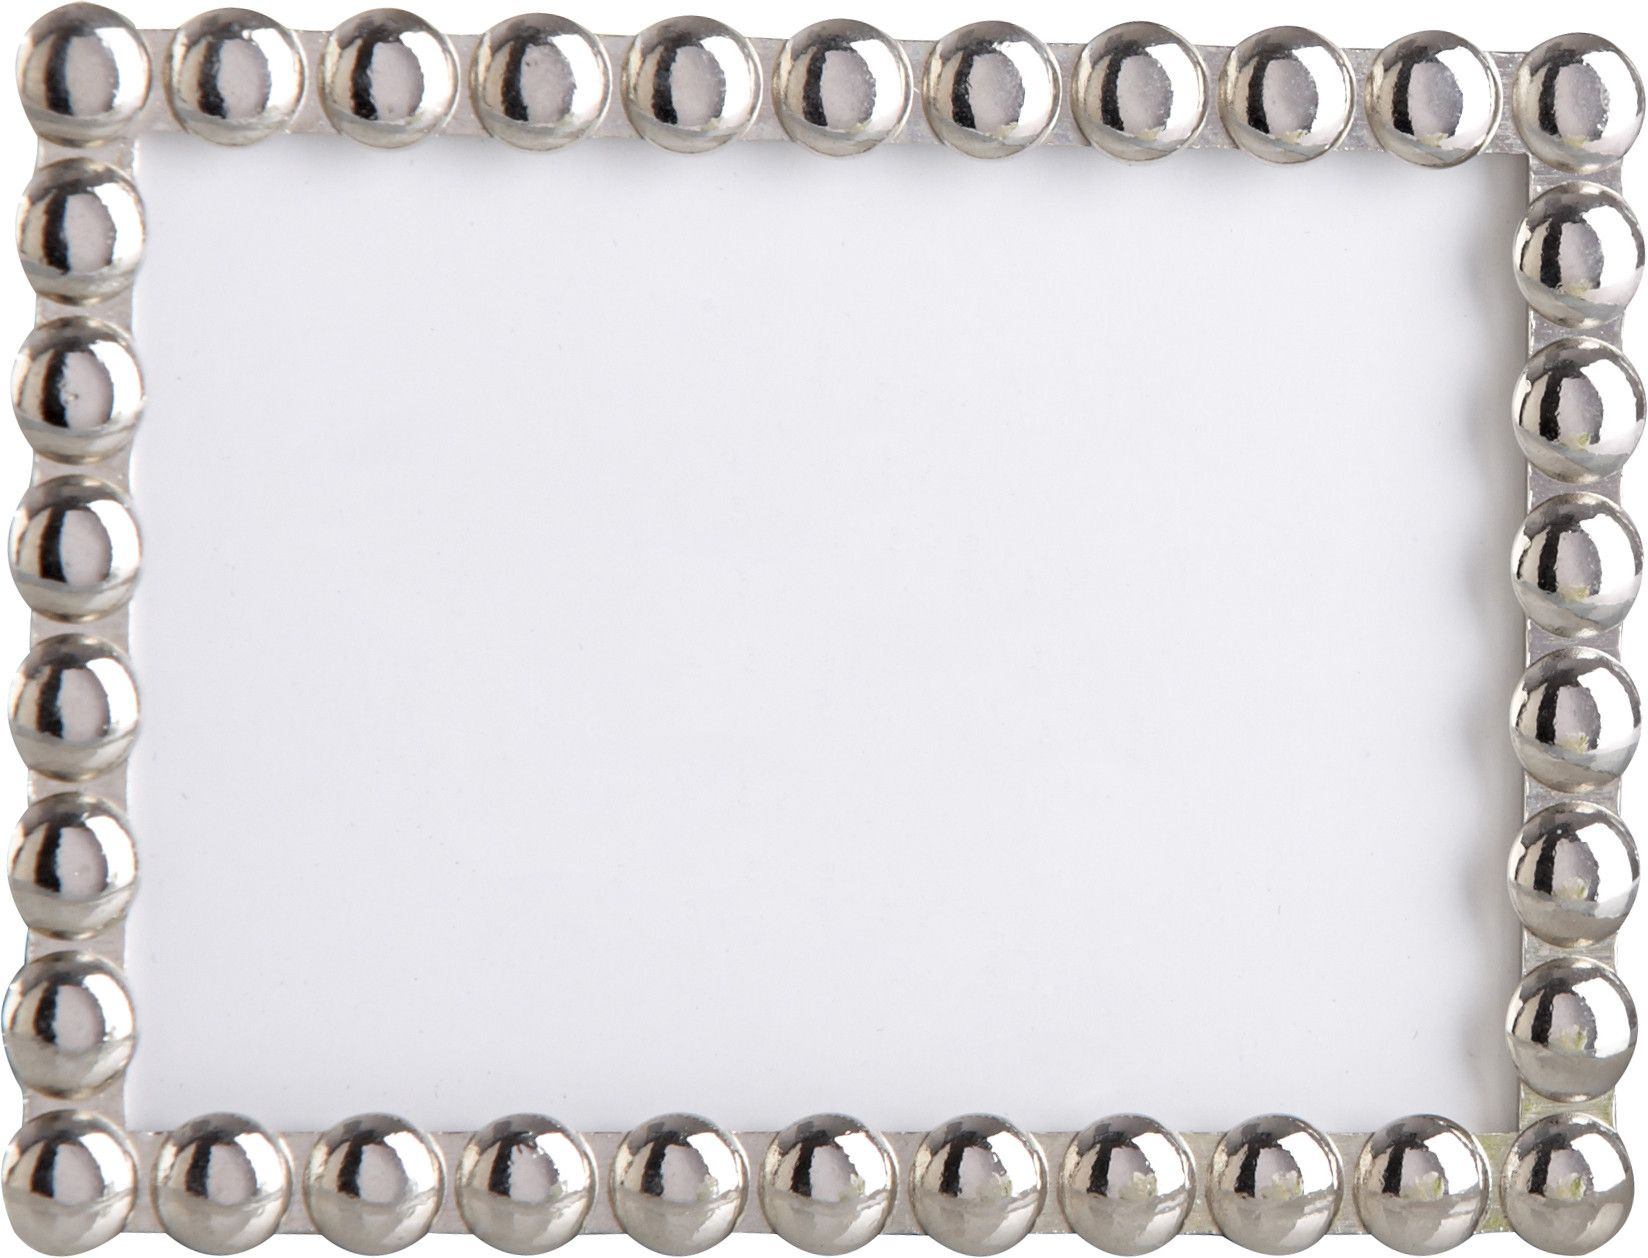 Silver Pearls\'\' Mini Photo Frame (Set of 10) | Products | Pinterest